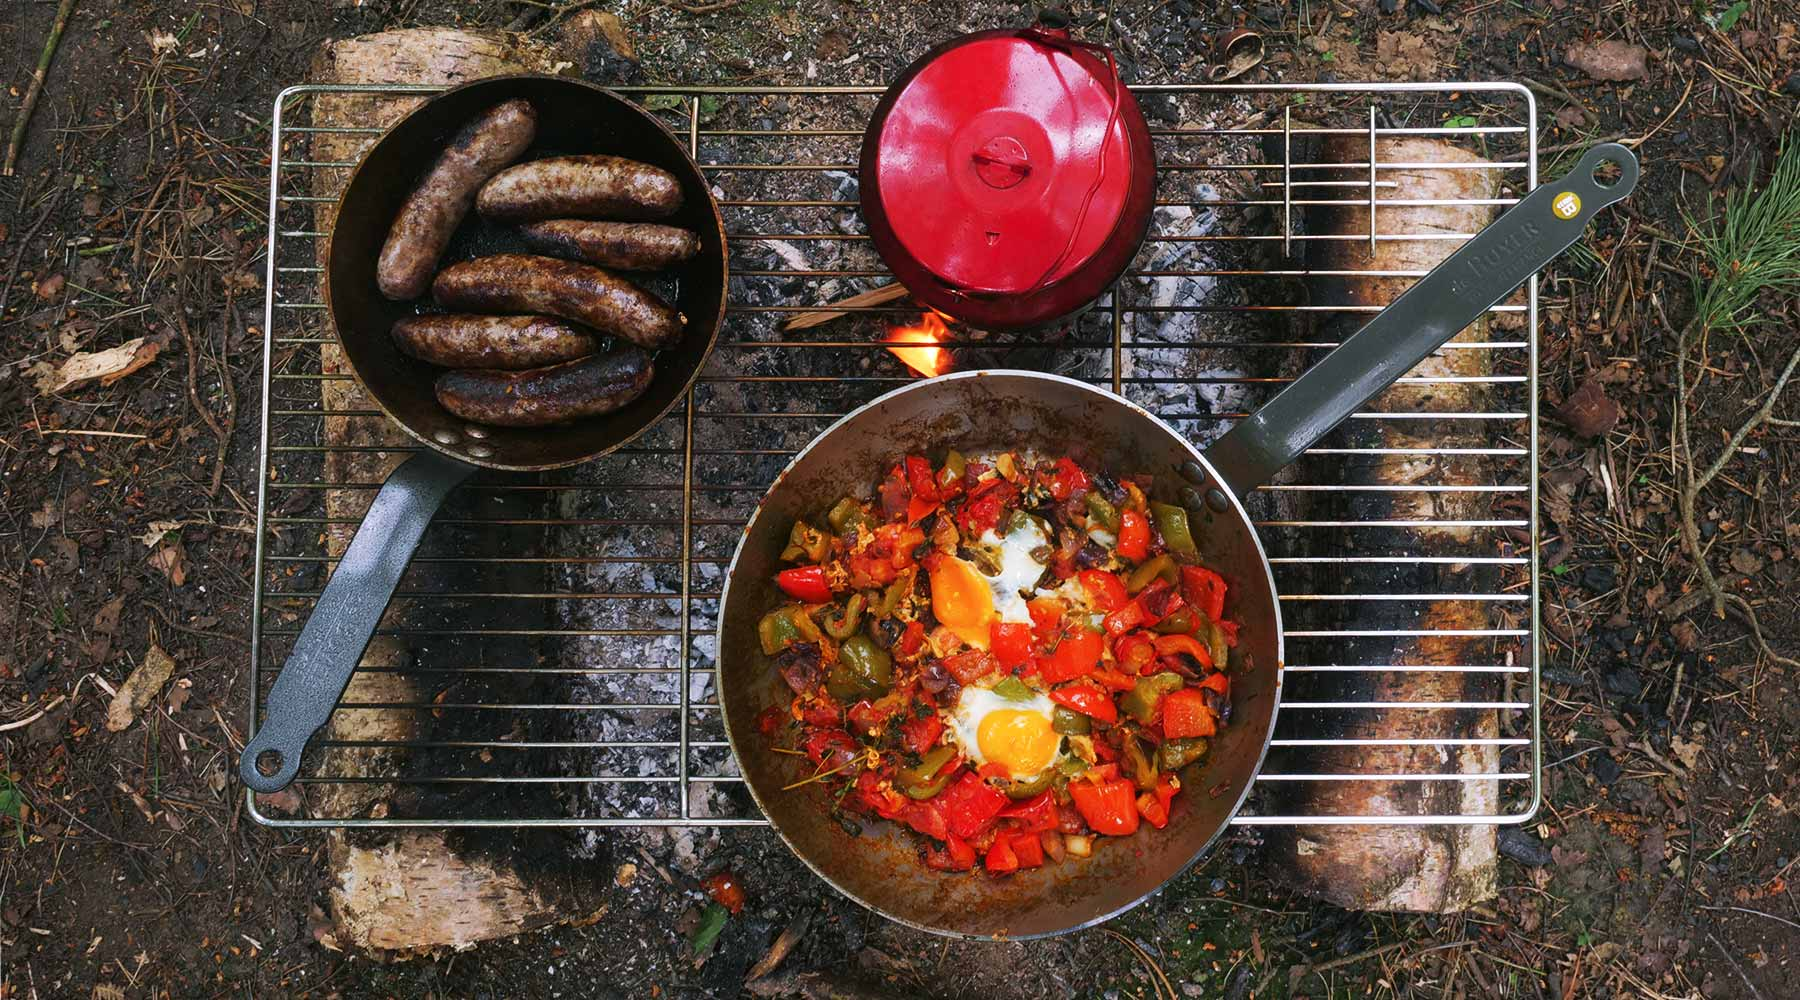 Shakshouka & Venison sausages in the woods